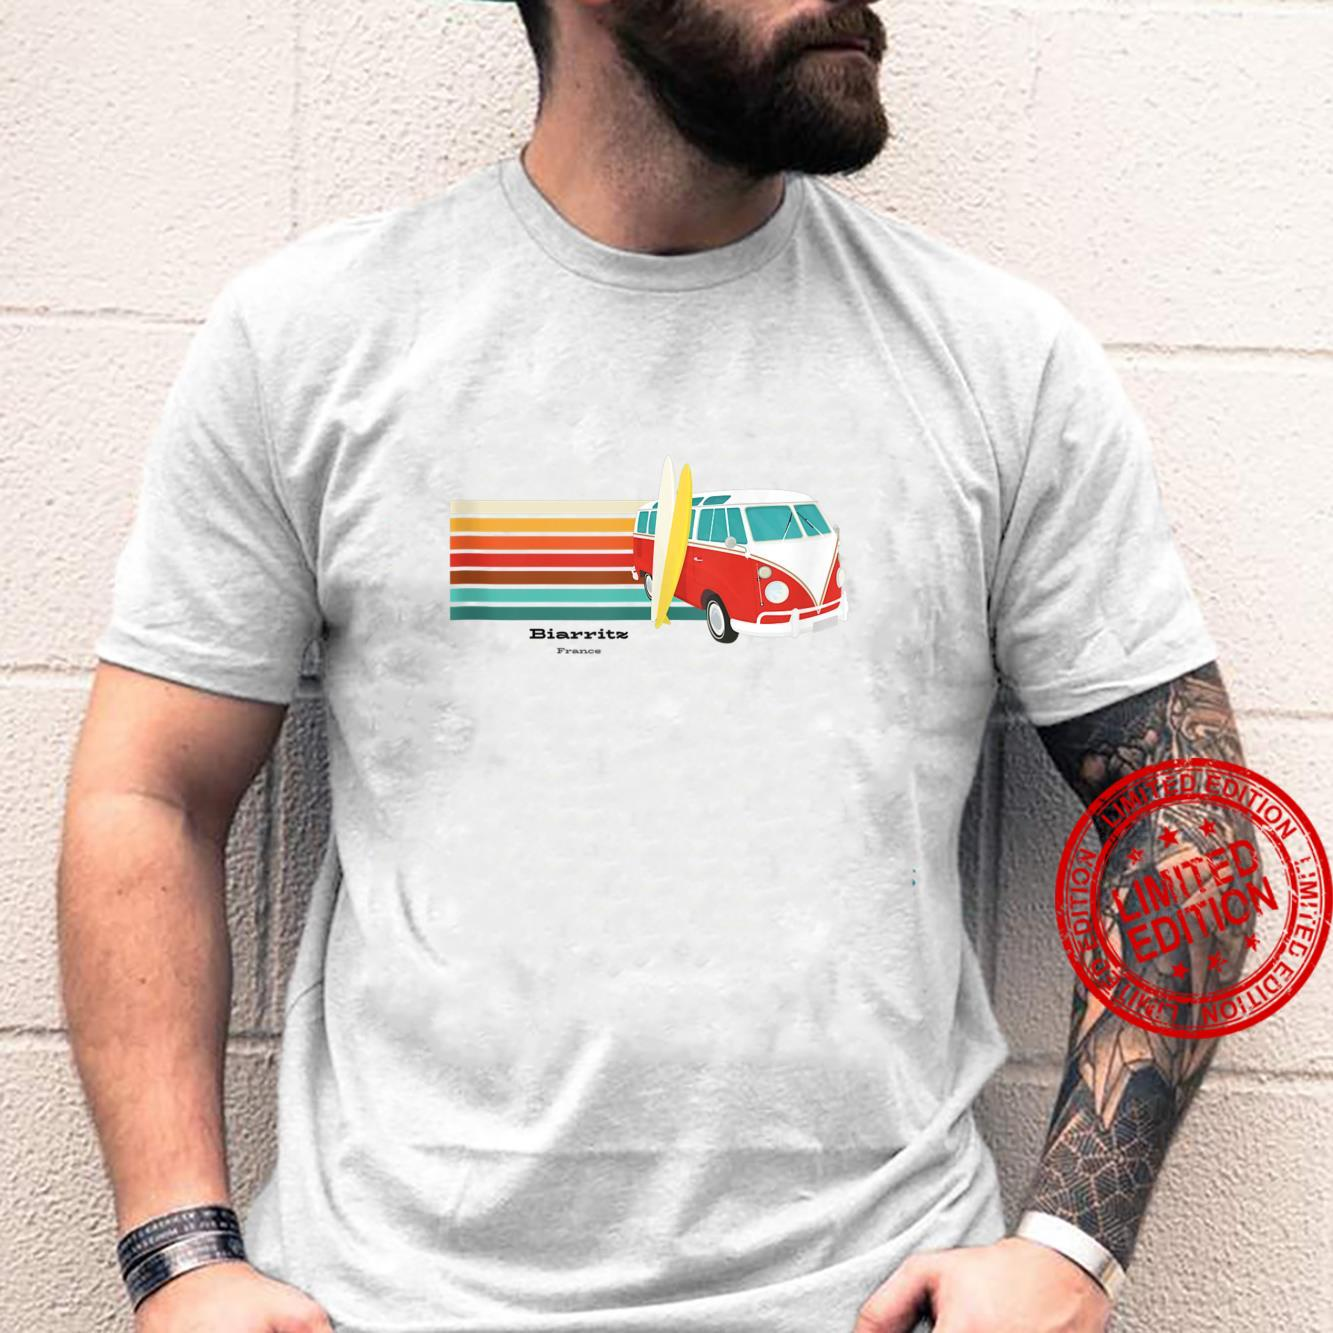 Go to Biarritz, France for Surfing Shirt